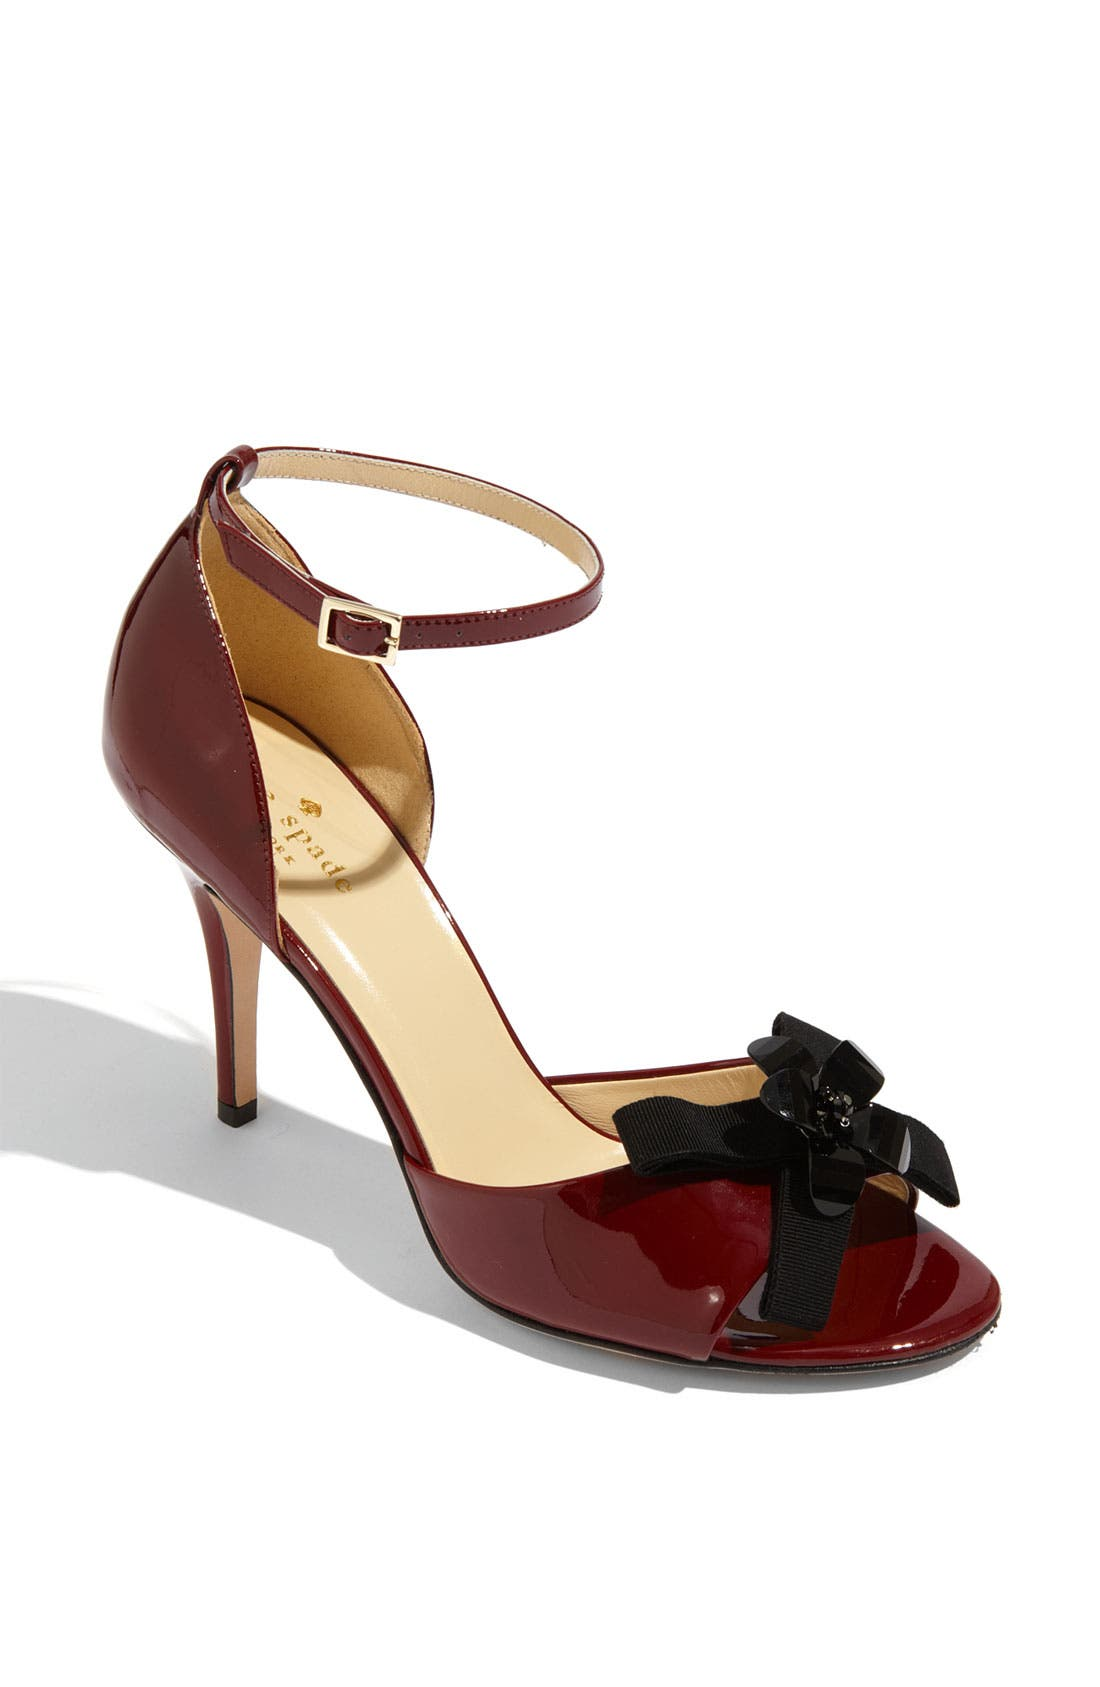 Alternate Image 1 Selected - kate spade new york 'silvy' sandal